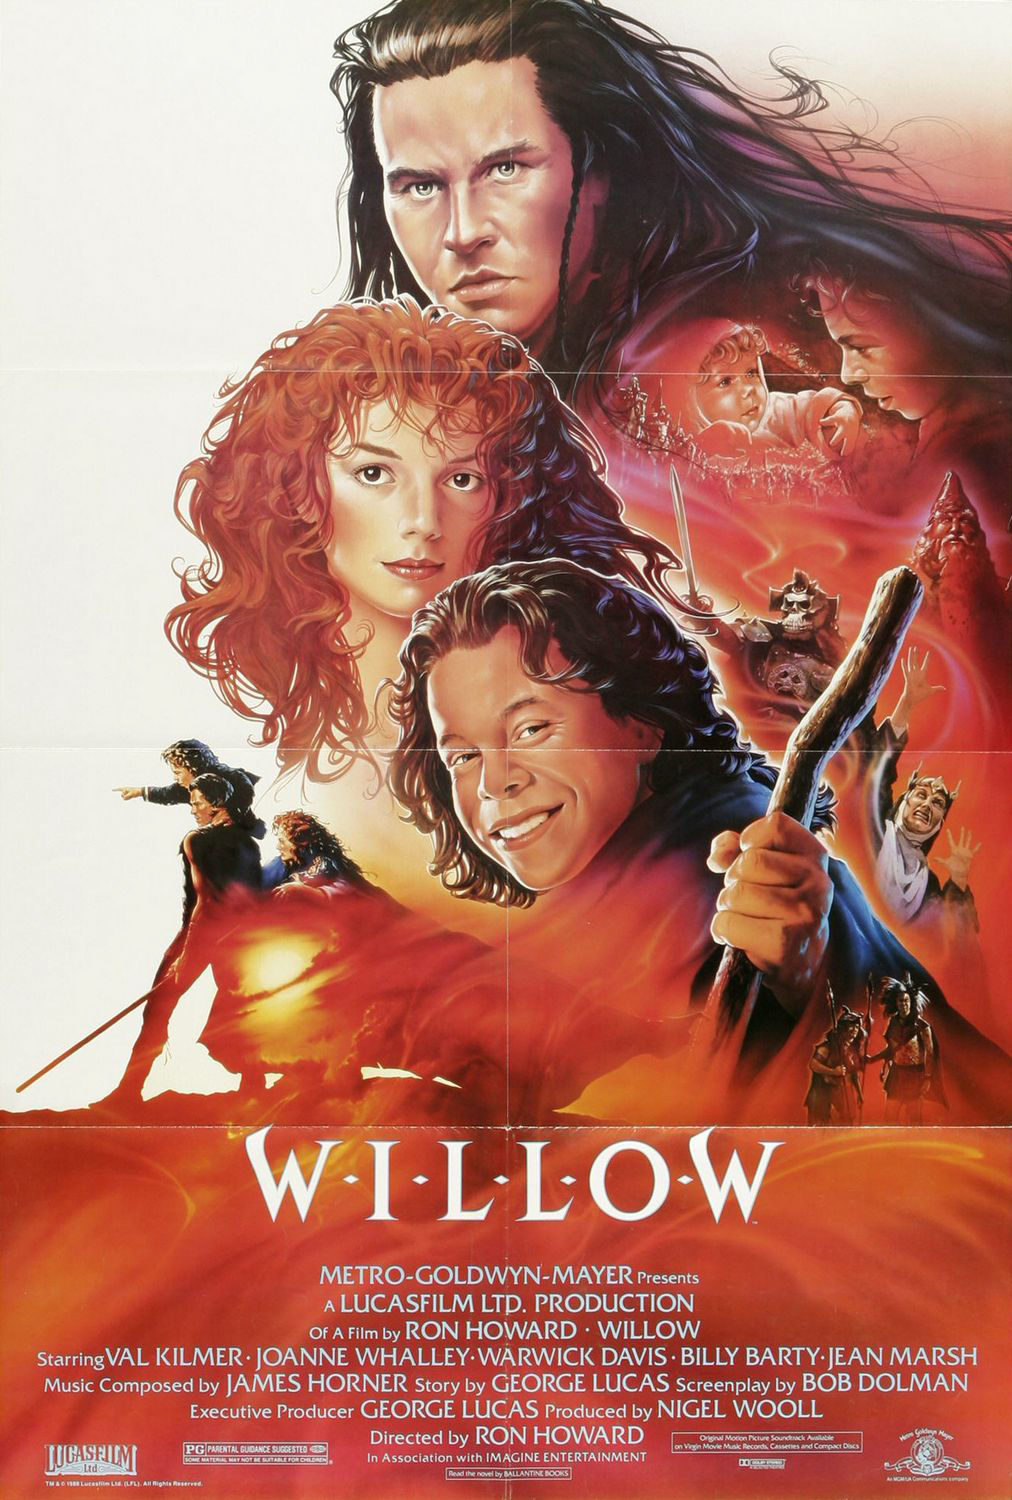 80 Best 78 Tarot Nautical Deck Images On Pinterest: Sika's 100 Greatest Movies Of All Time! 44. Willow (1988